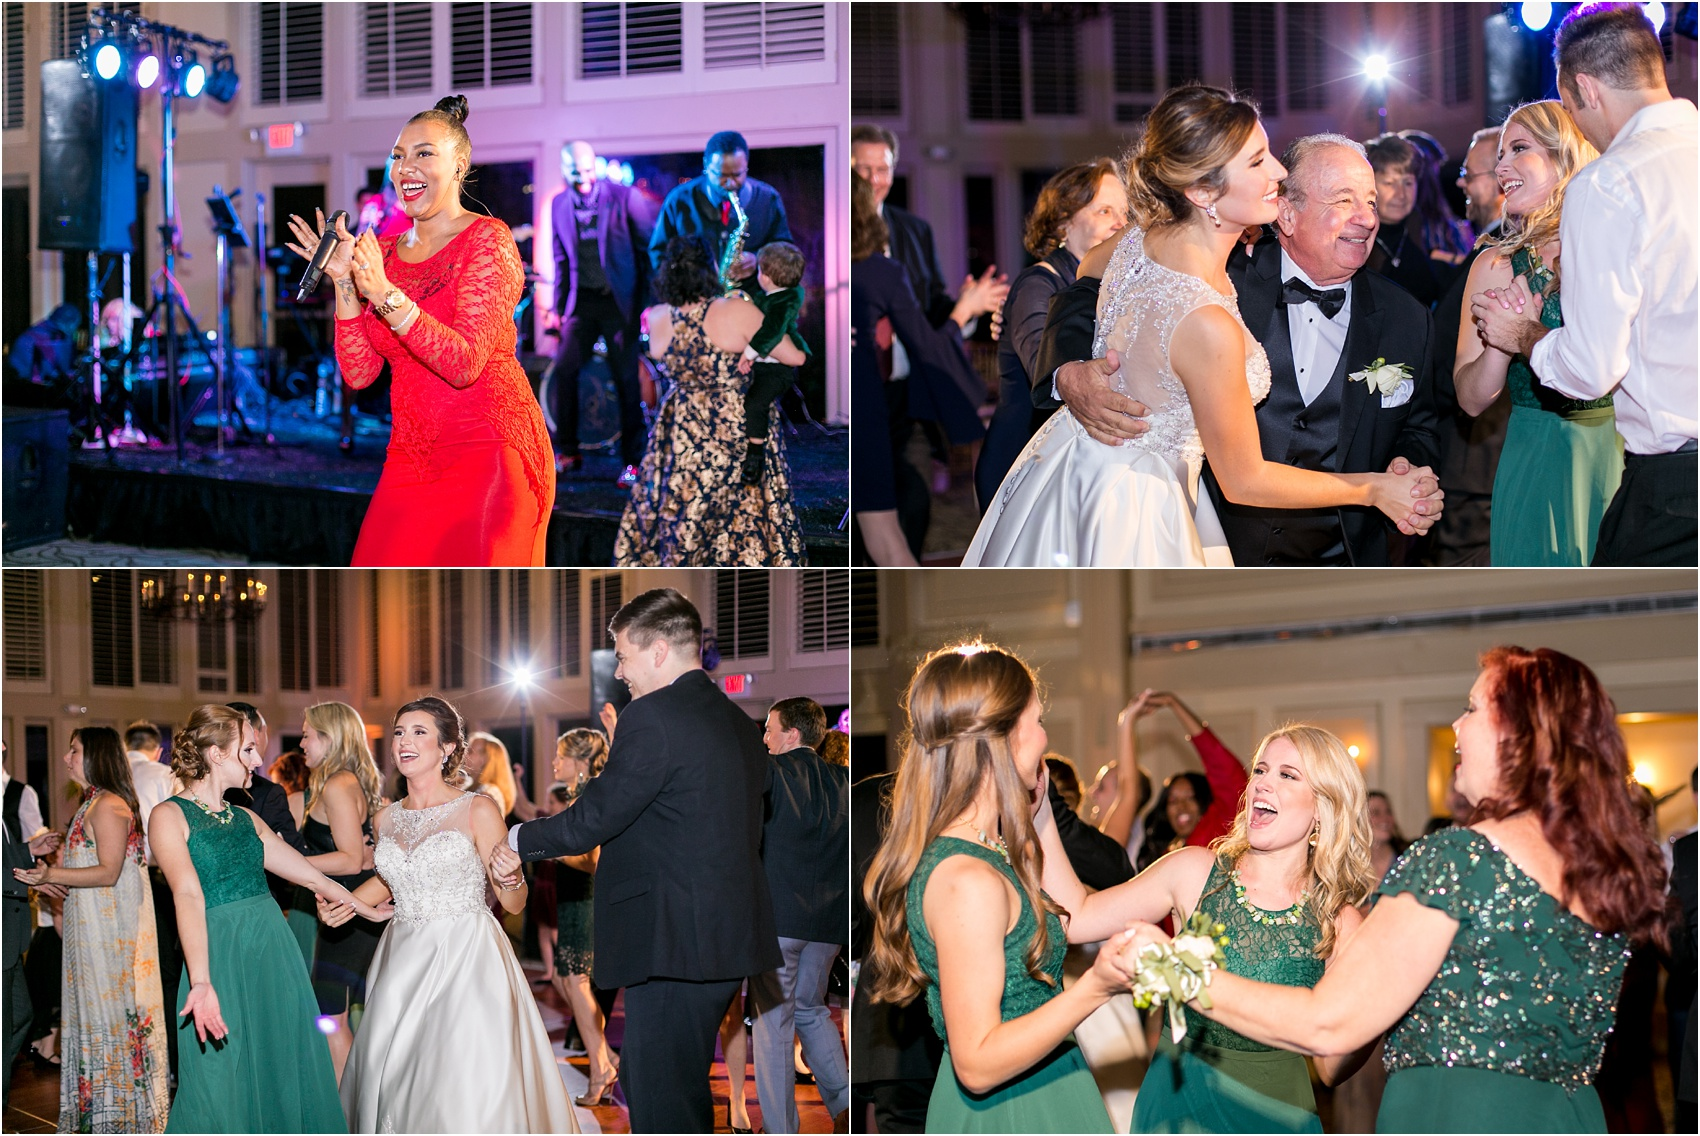 Savannah Eve Photography- Bottiglion-Scope Wedding- Sneak Peek-103.jpg